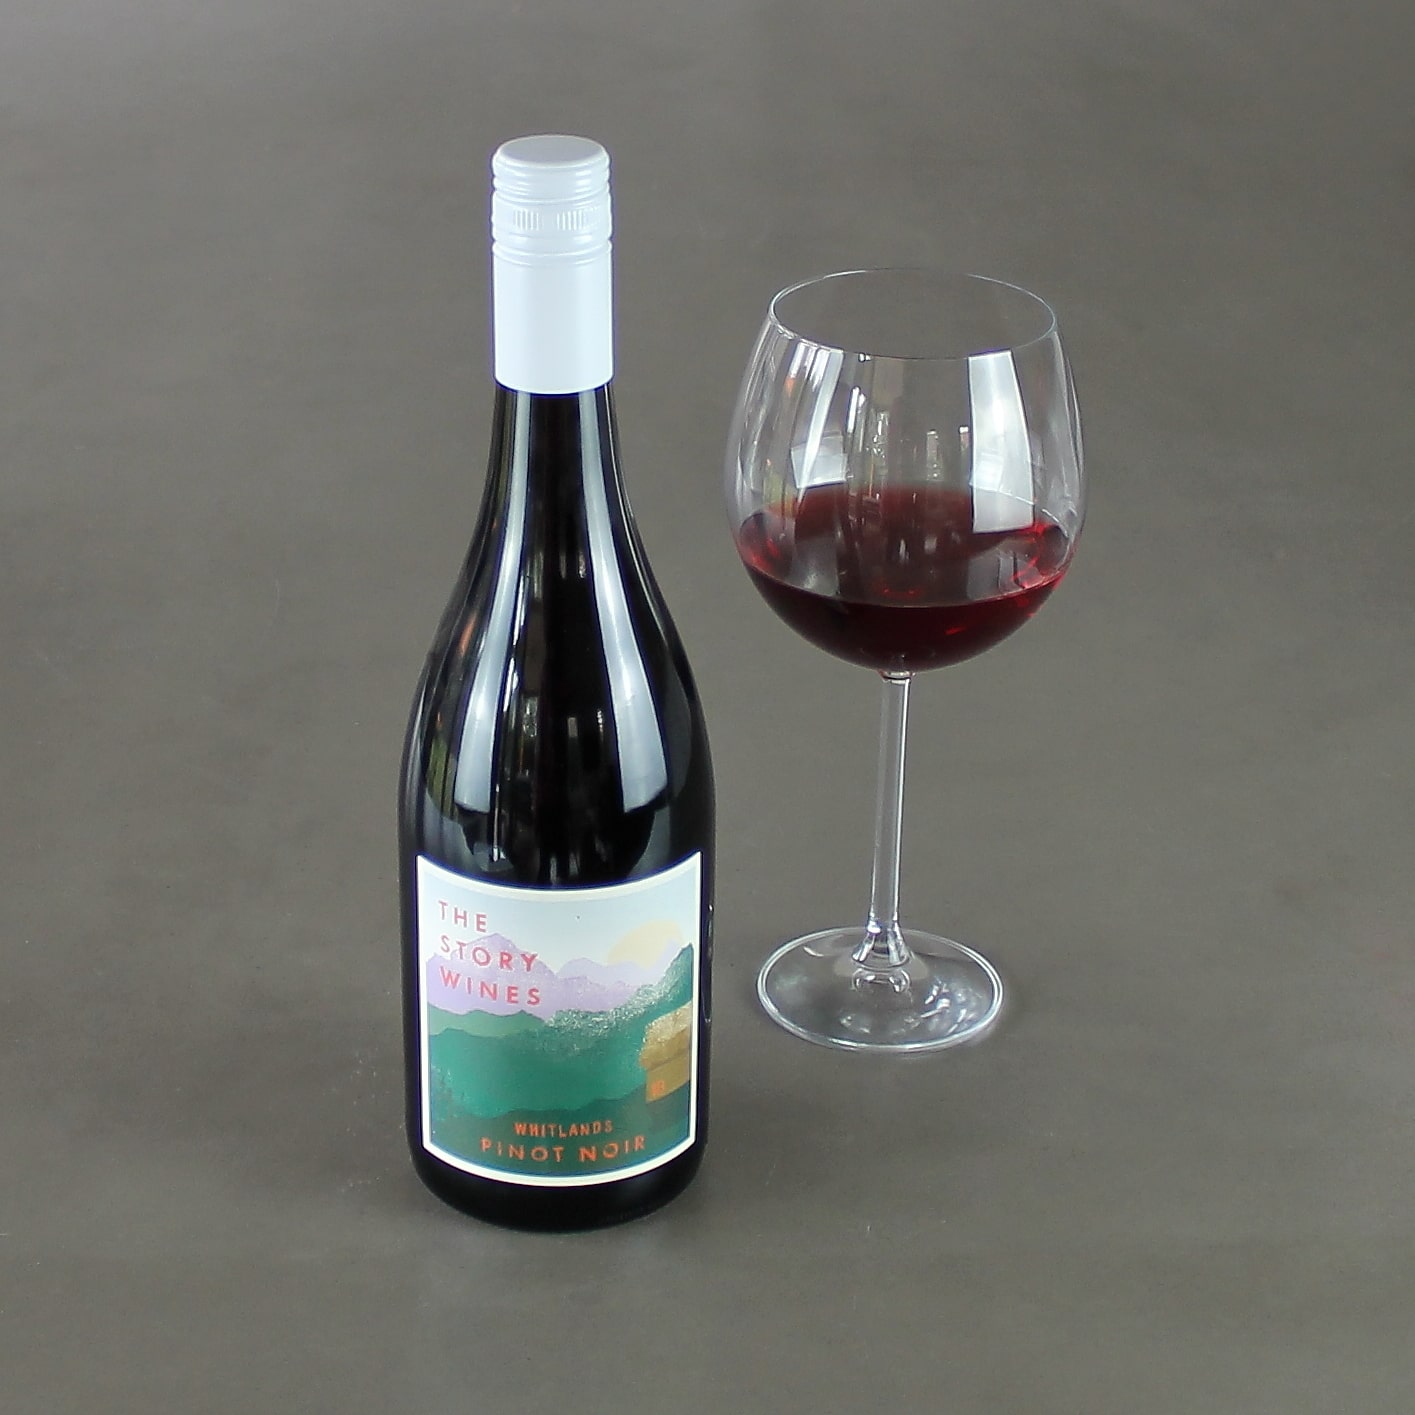 The Story Pinot Noir 2018